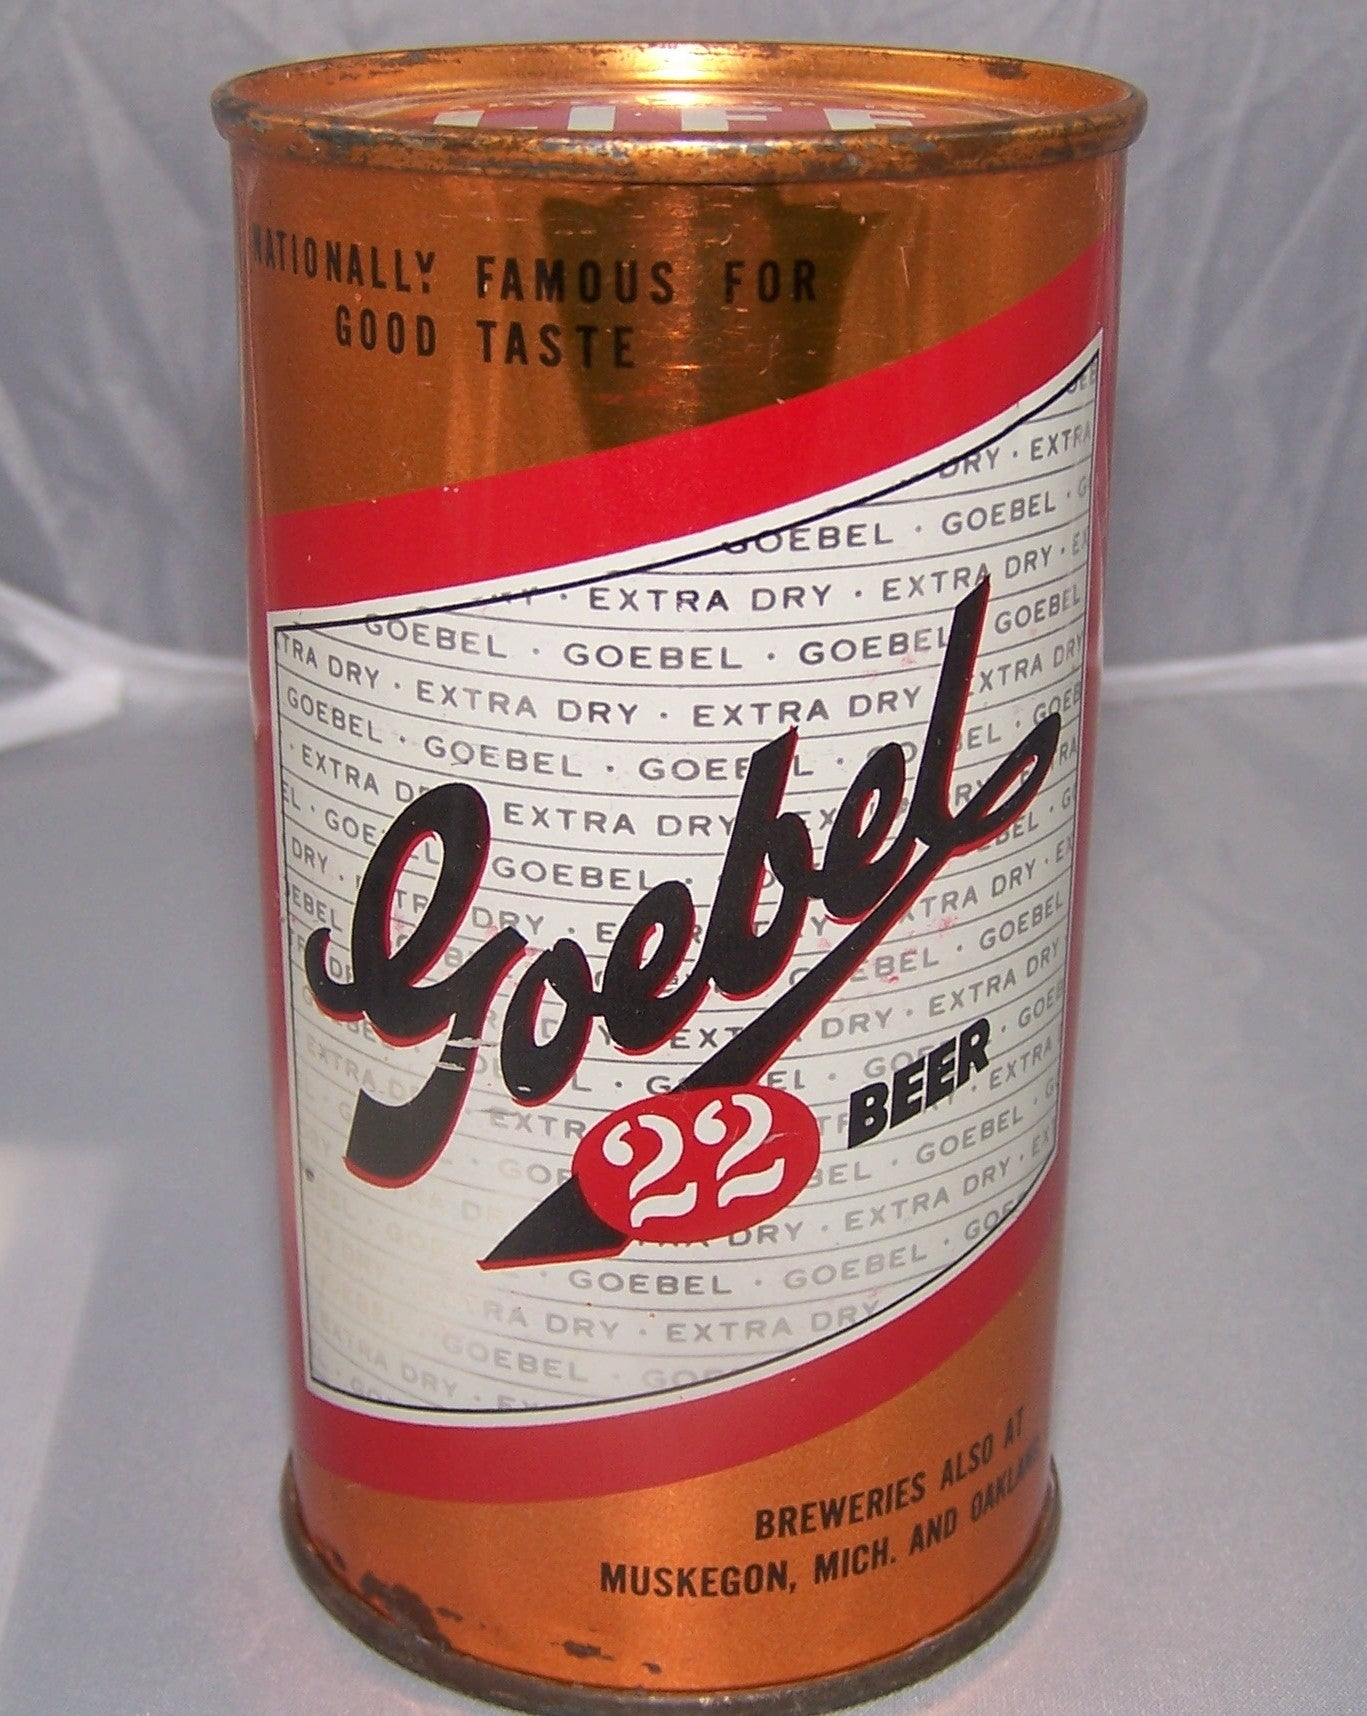 Goebel 22 Beer, USBC 71-2, Grade 1 Sold on 2/13/15